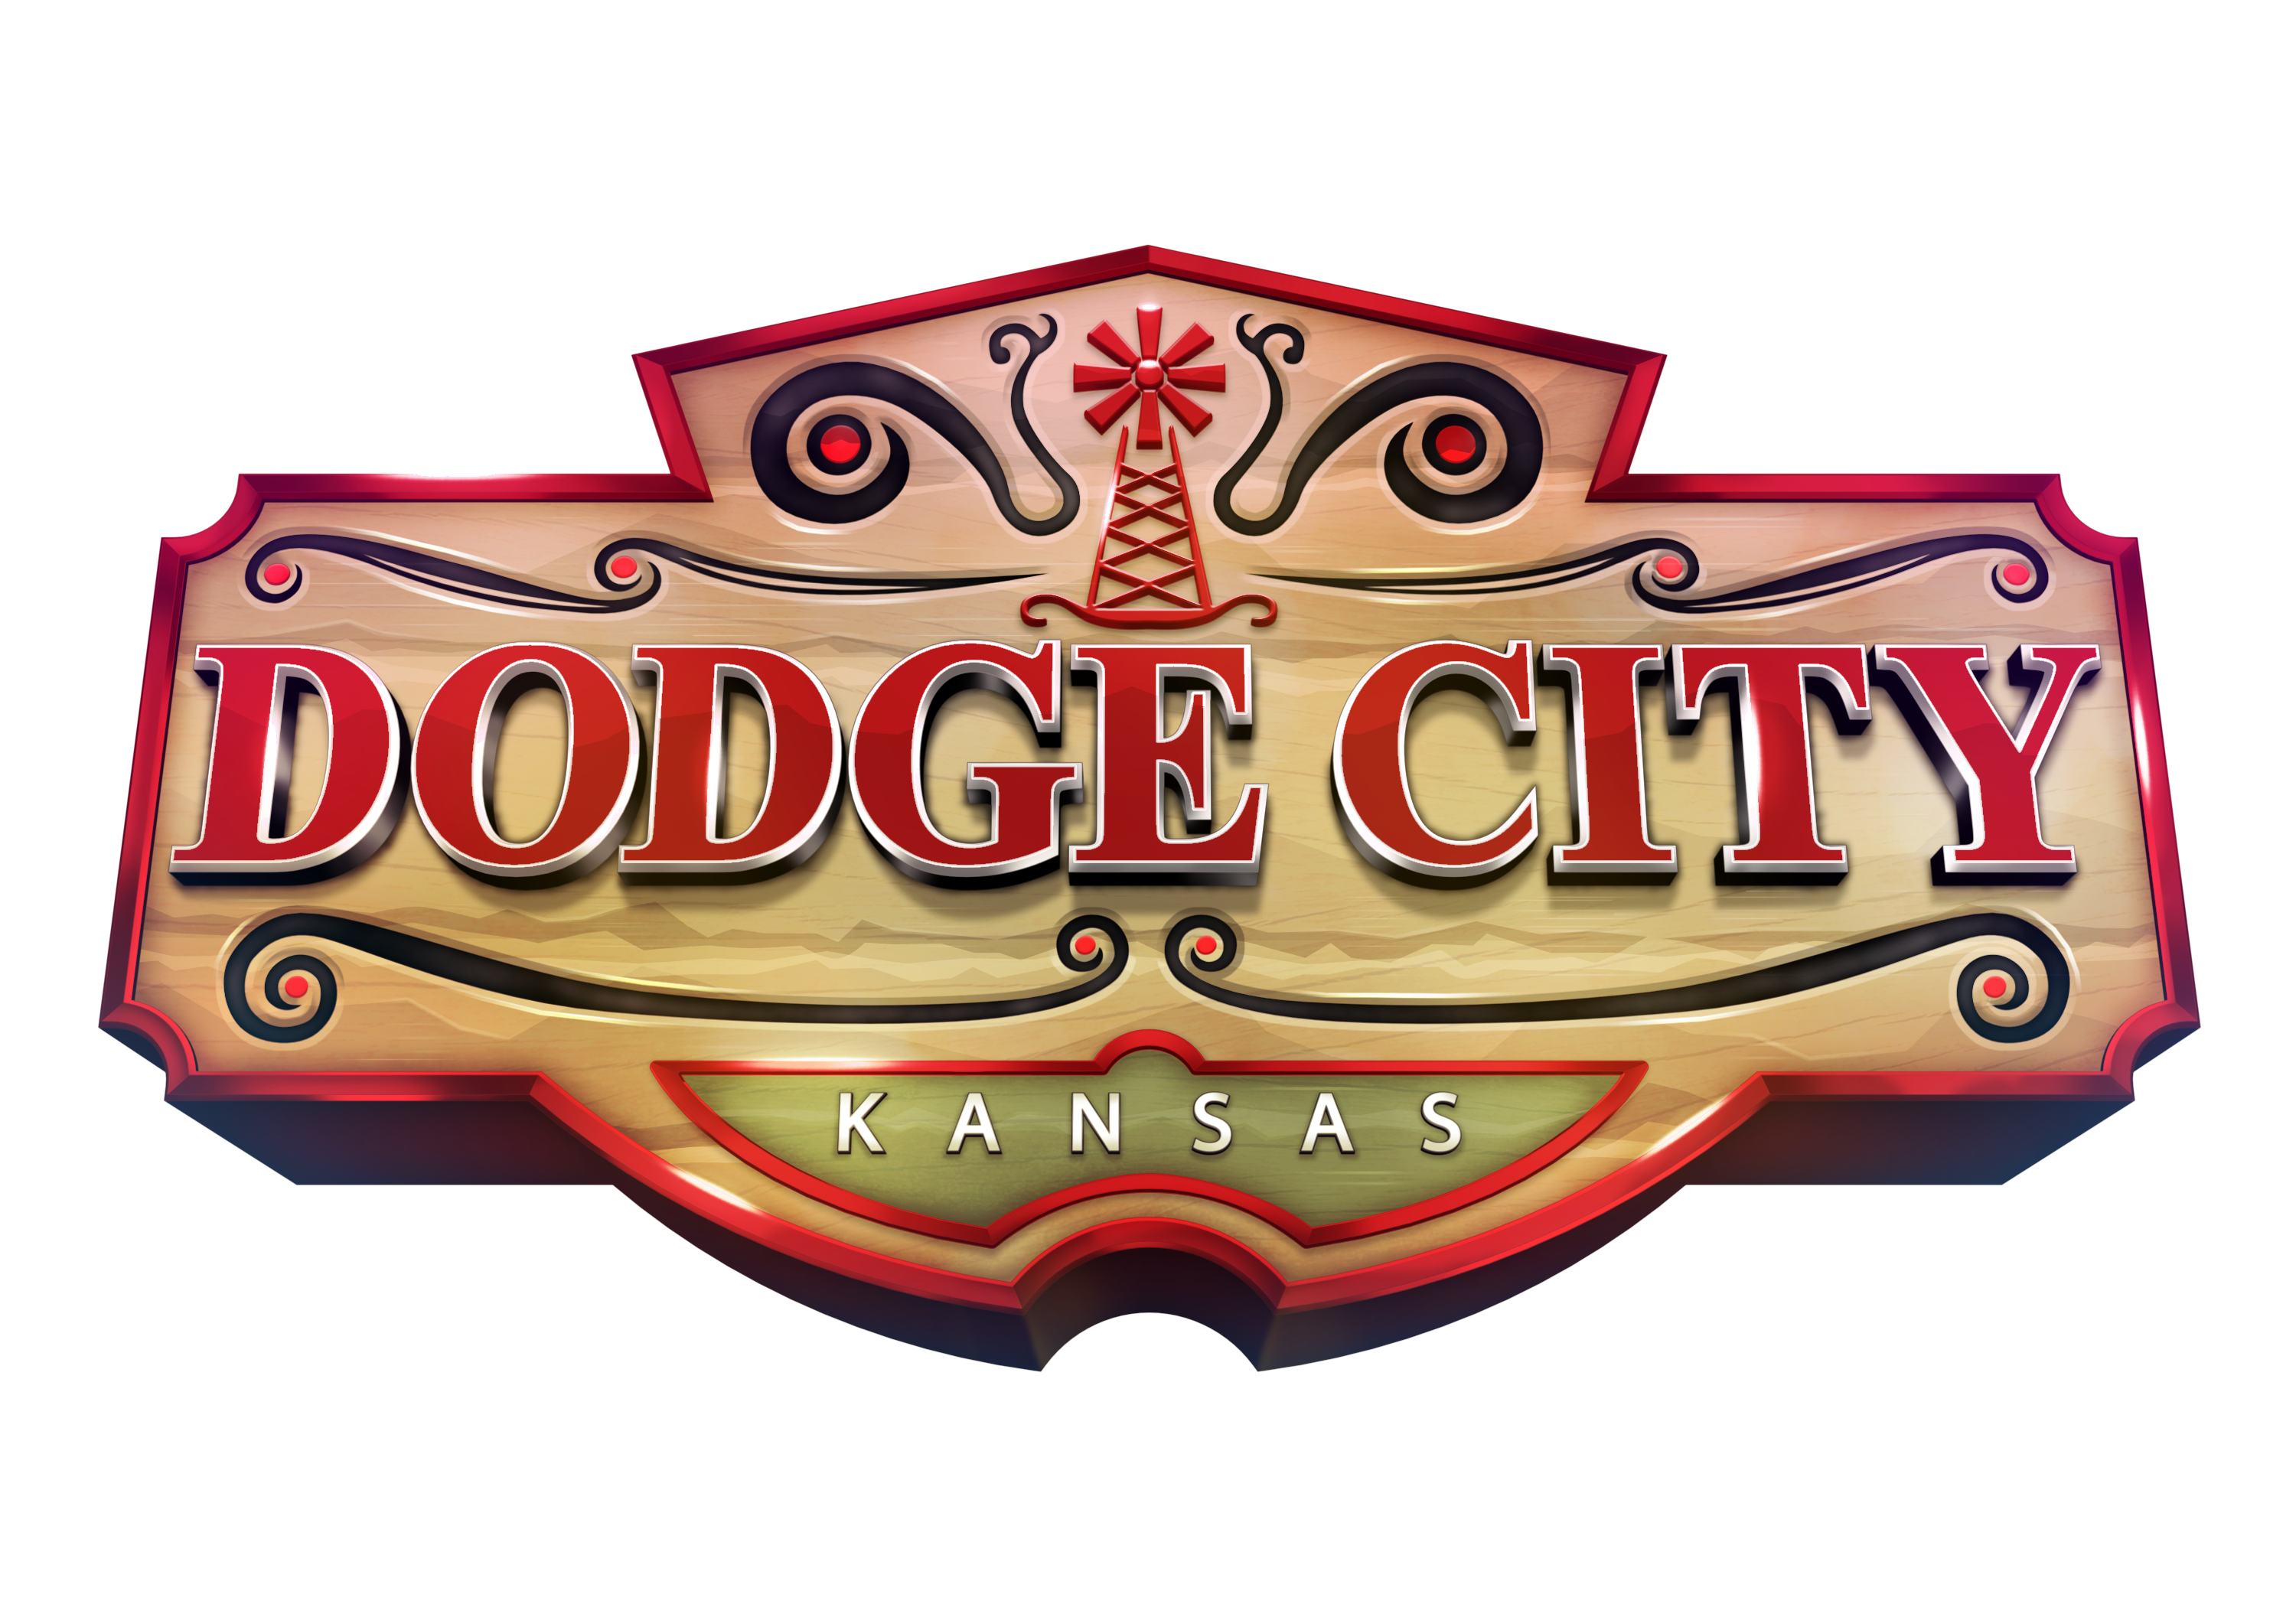 Dodge City course logo